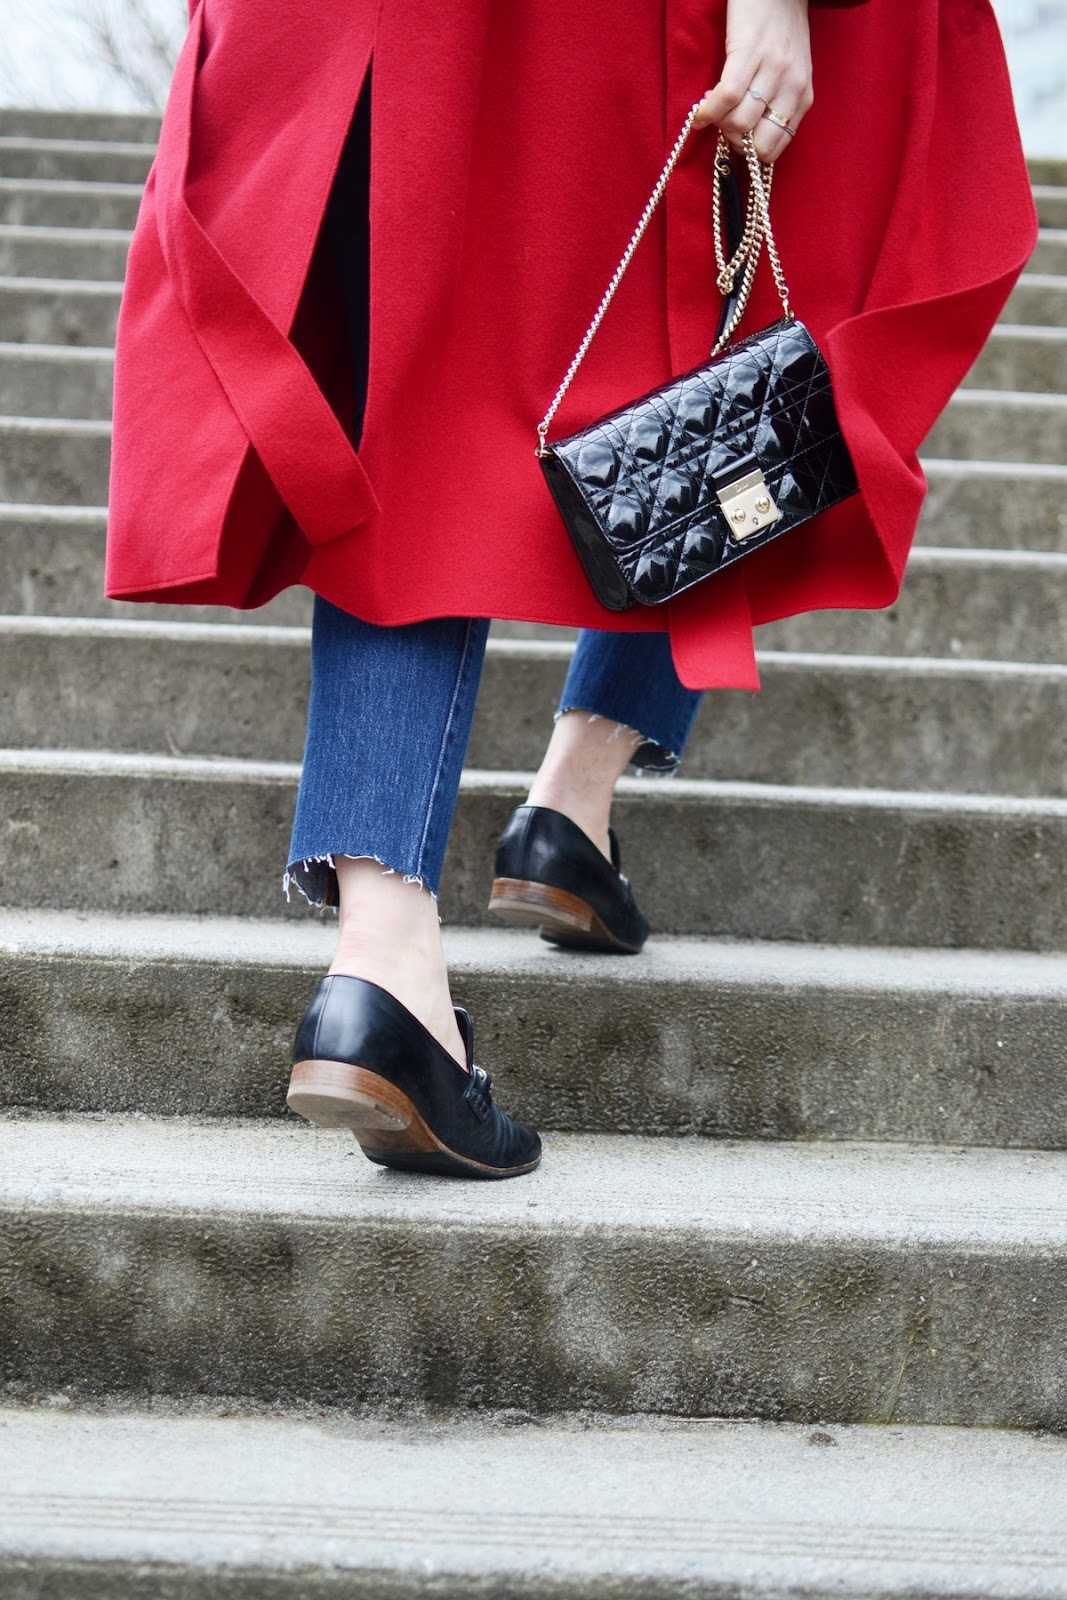 Red wool coat mang robe coat Dior Promenade Levi's 501 skinny jeans outfit vancouver fashion blogger